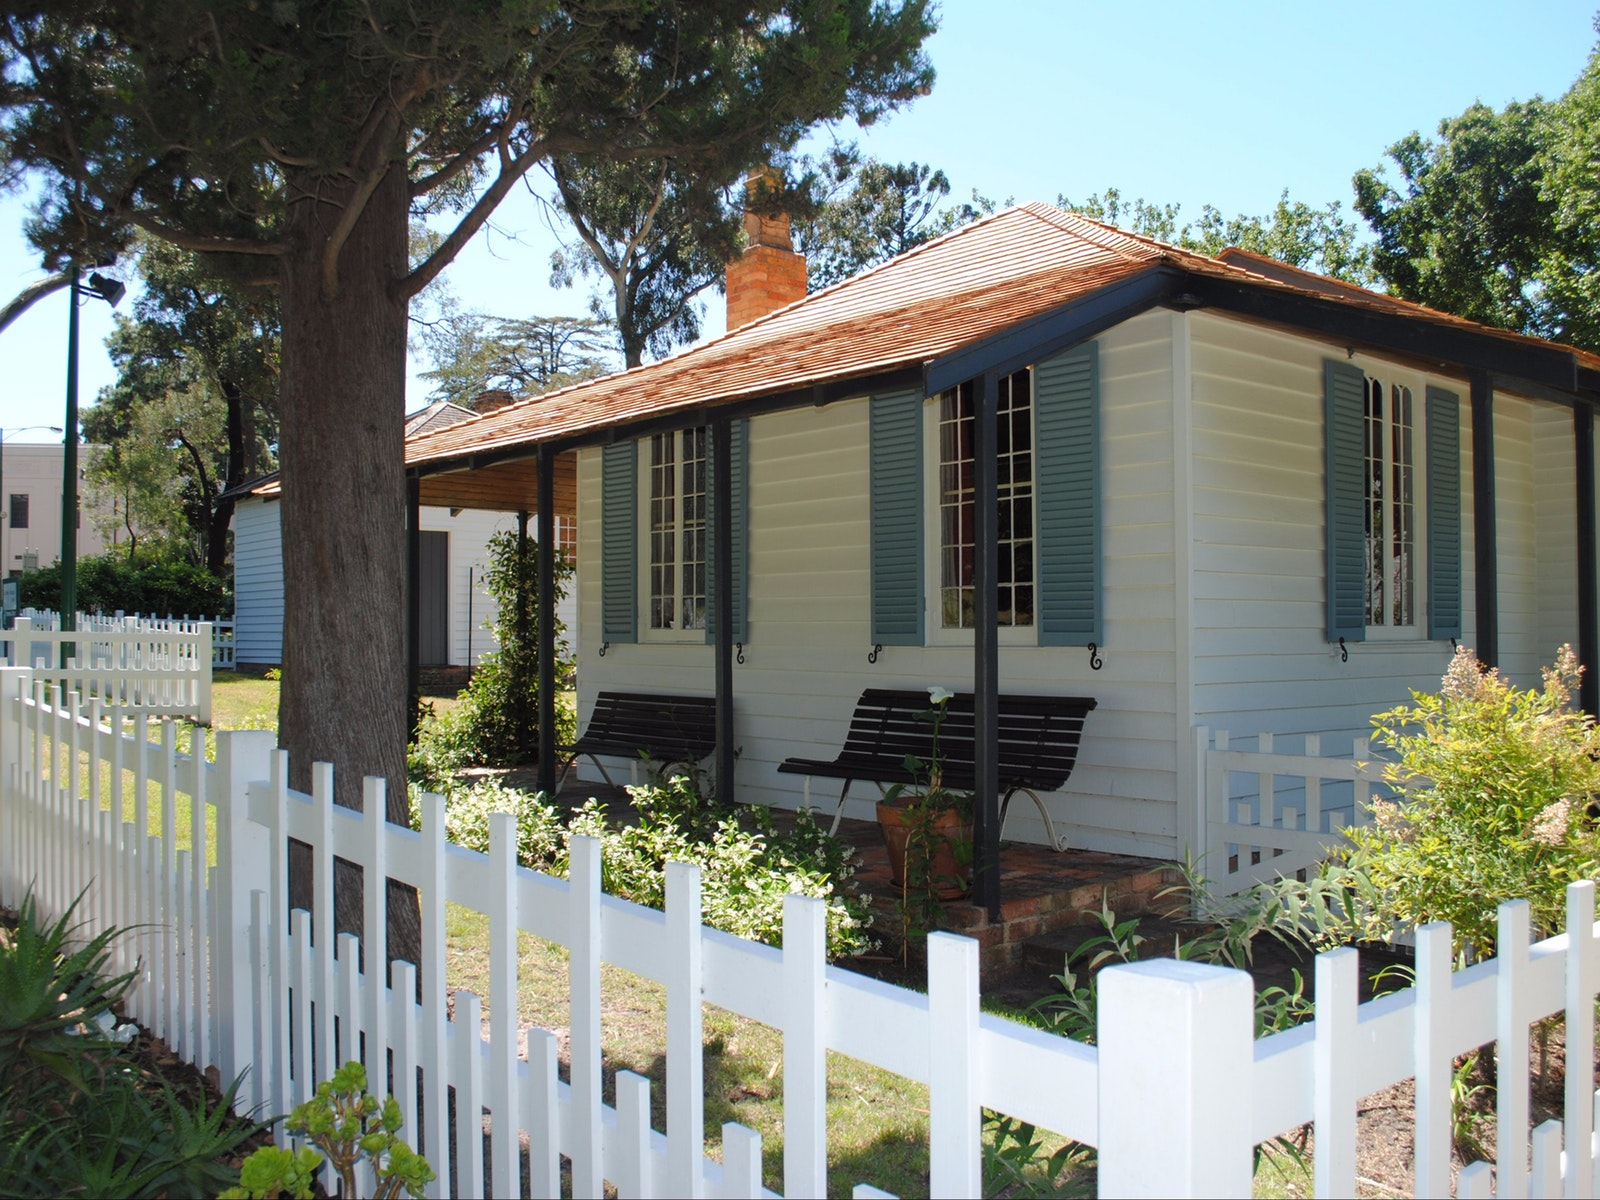 La Trobe's Cottage Tour